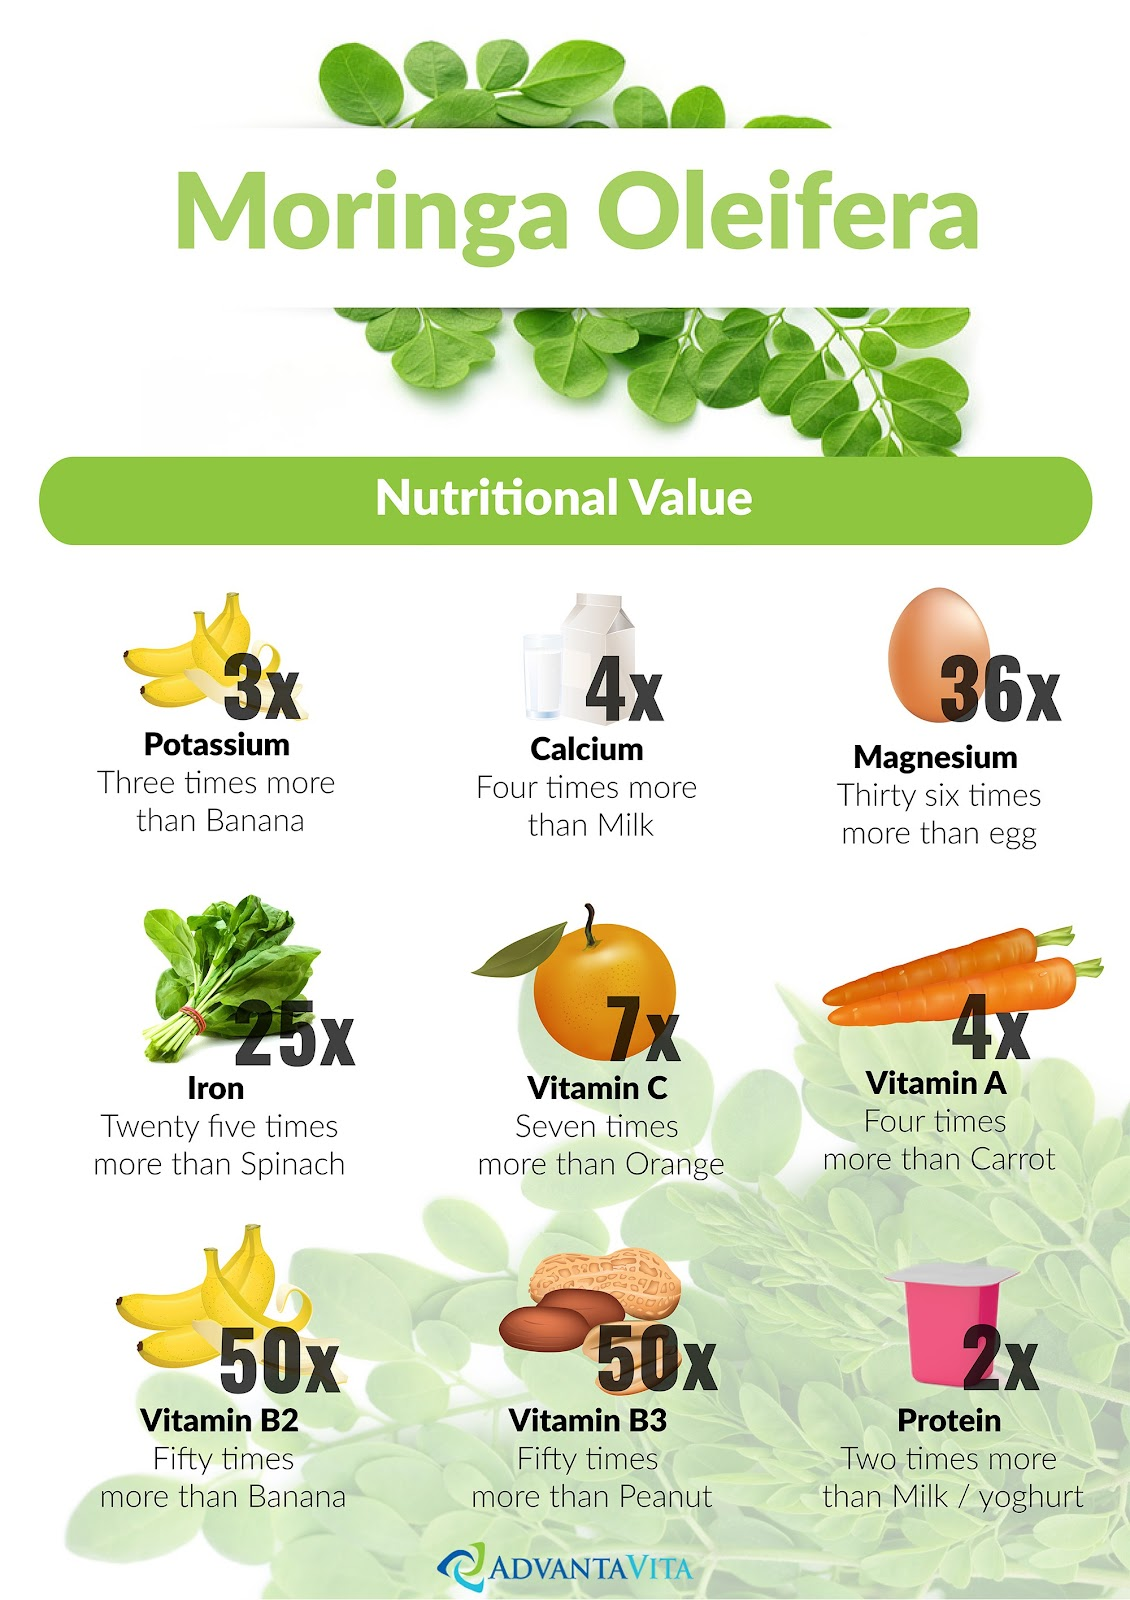 Moringa - A superfood